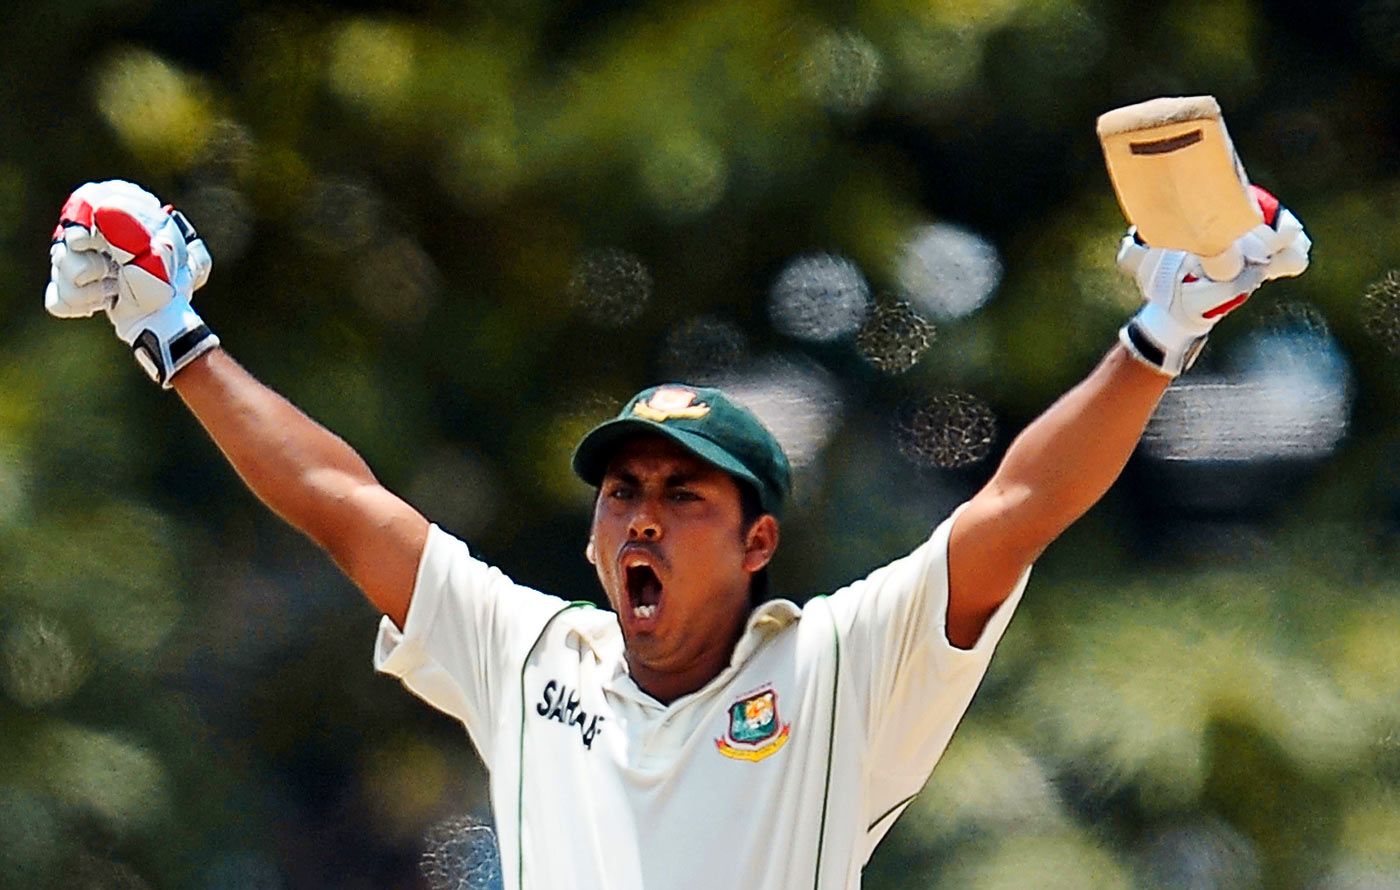 The last roar: Ashraful's Test-best 190 came against Sri Lanka in March 2013, shortly before his world came crashing down